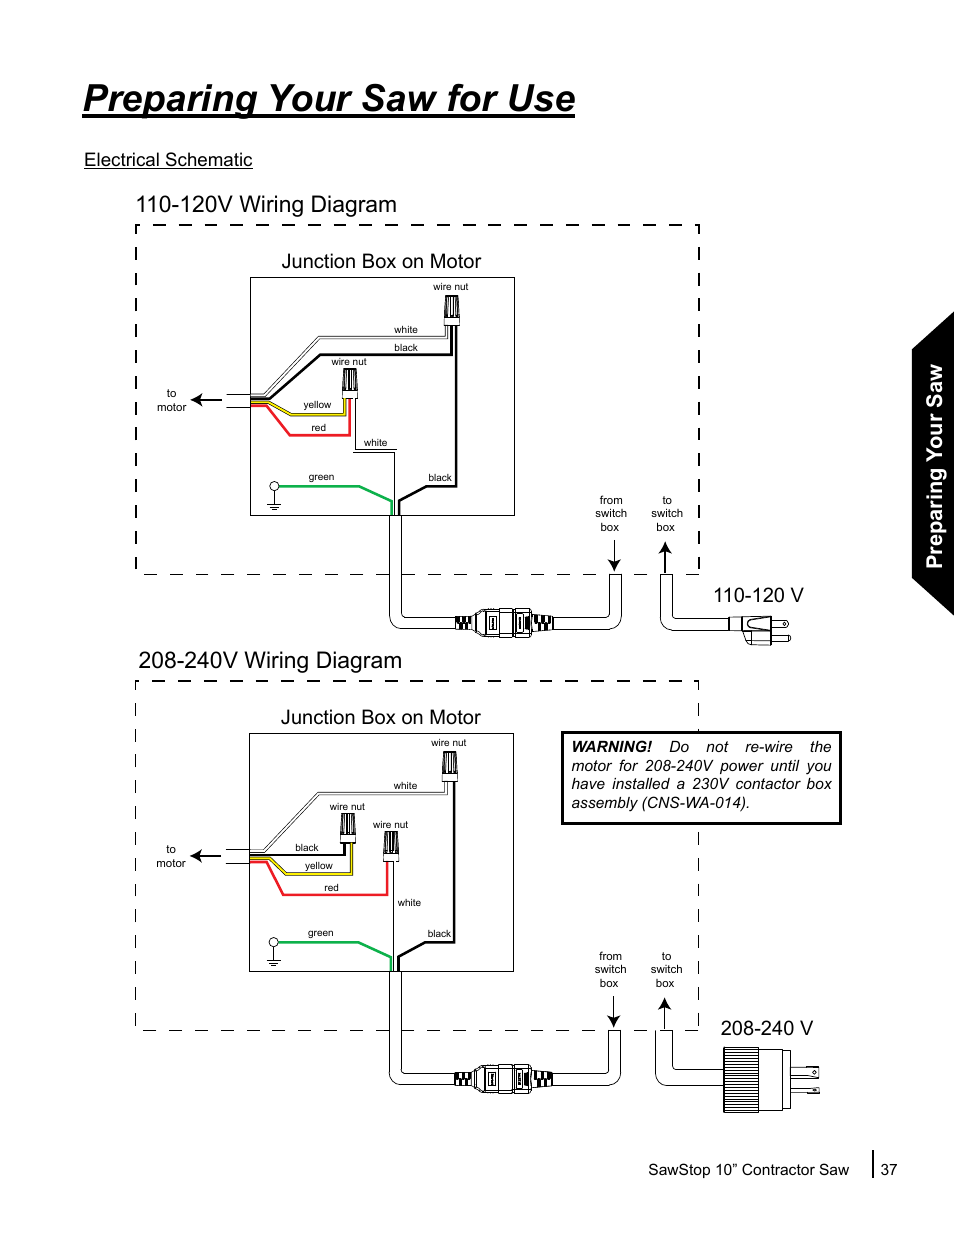 Sawstop Wiring Diagram Opinions About 3 Way Switch 110 Volt Preparing Your Saw For Use 120 V Rh Manualsdir Com